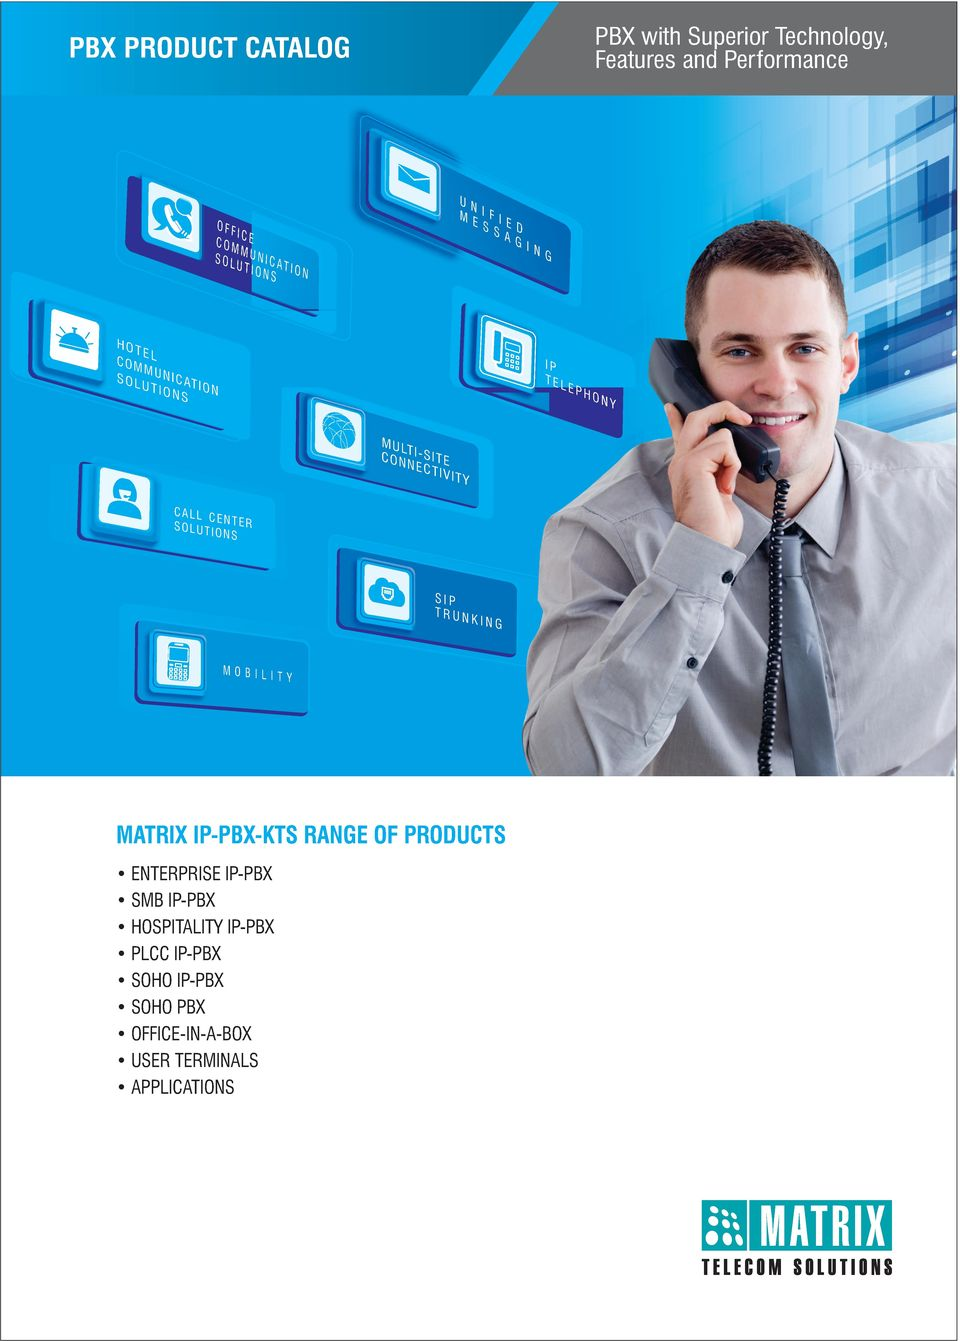 TY CALL C ENTER SOLUT IONS SIP TRUN KING MOBILI TY MATRIX IP-PBX-KTS RANGE OF PRODUCTS ENTERPRISE IP-PBX SMB